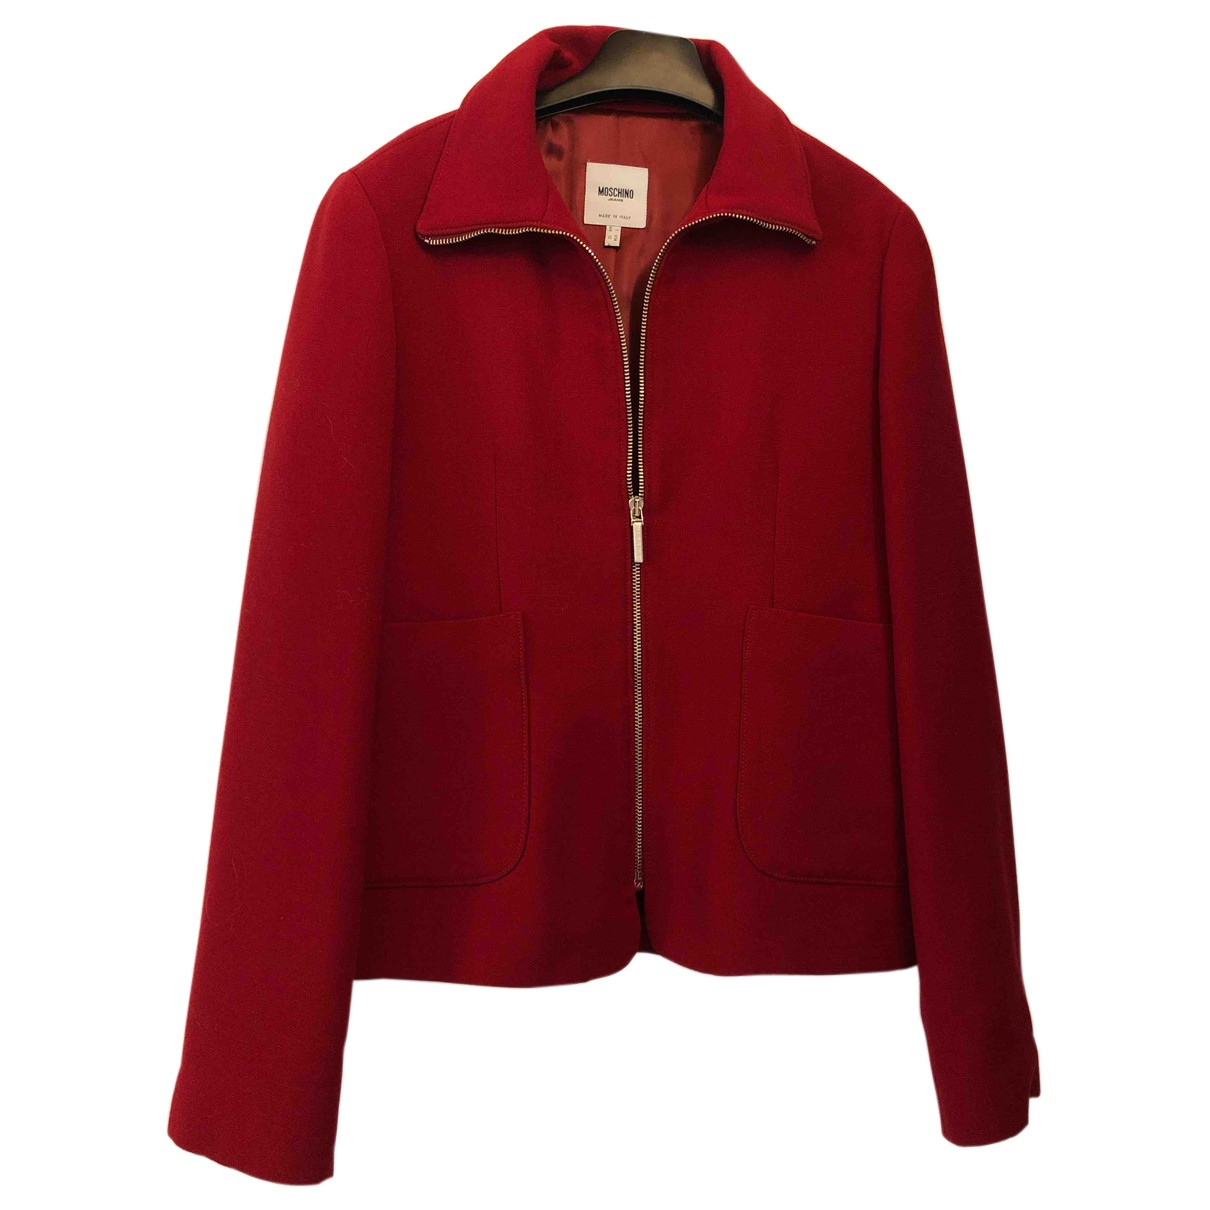 Moschino \N Jacke in  Rot Wolle